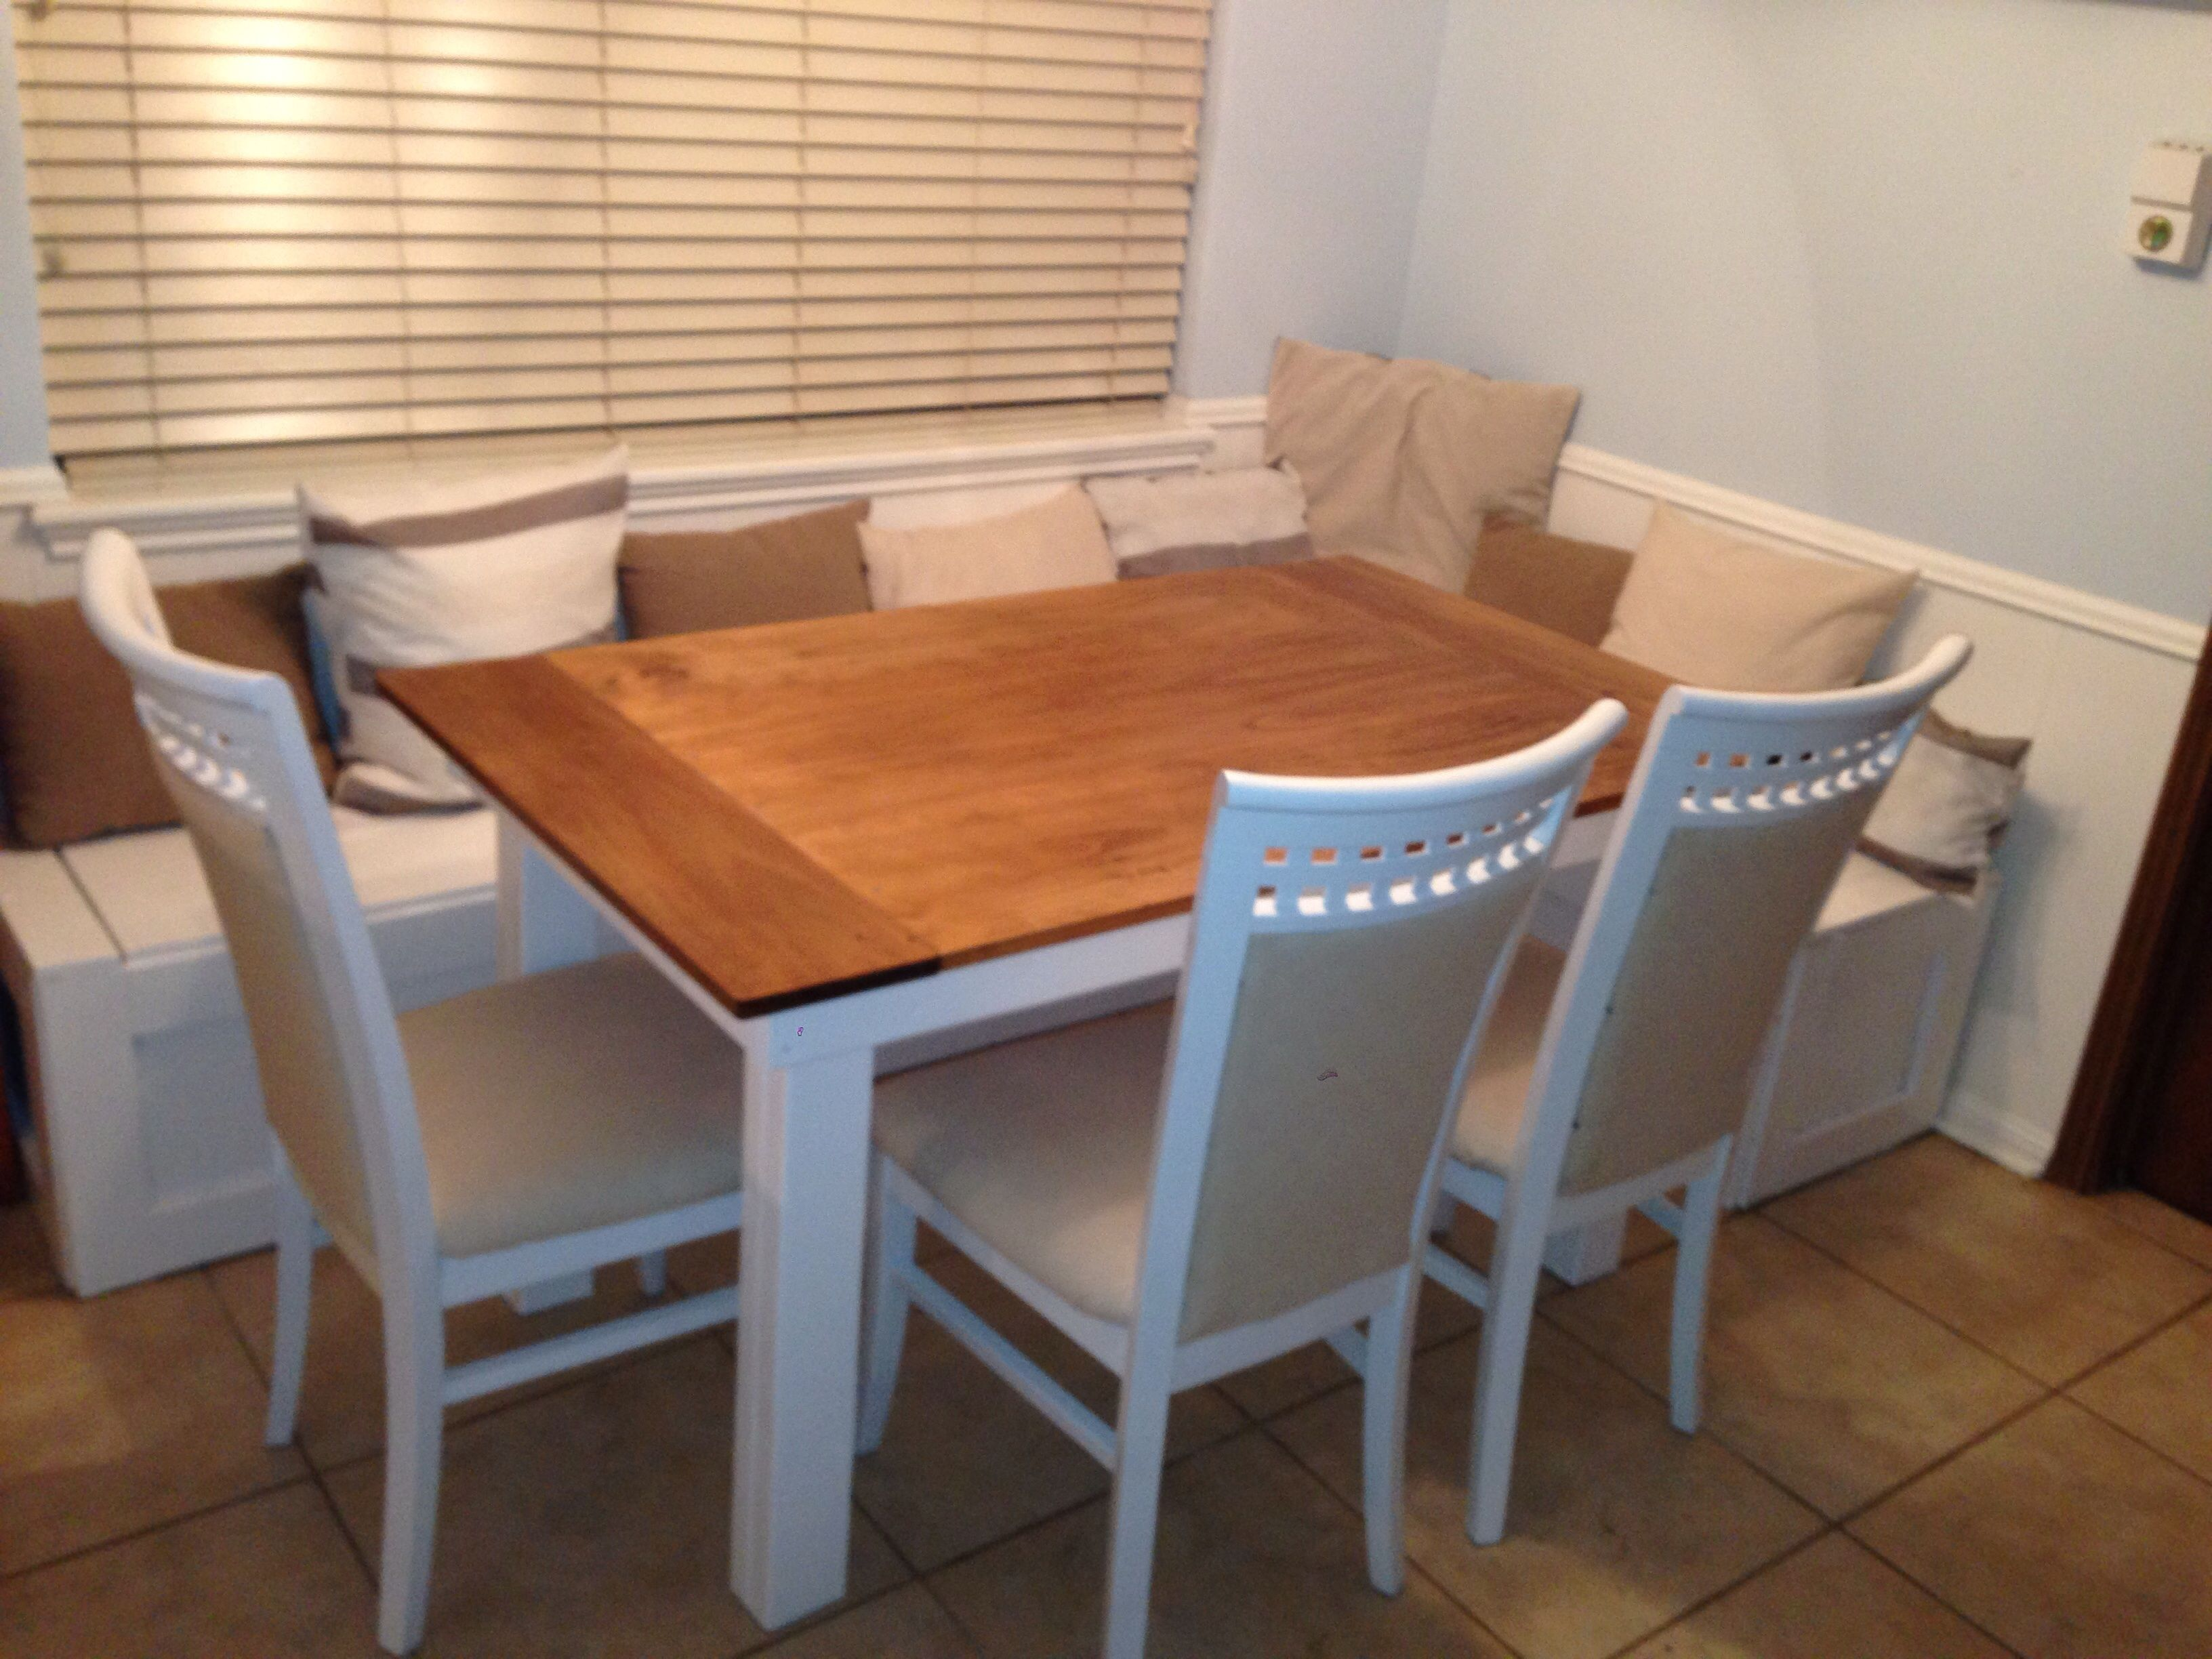 Ana White Breakfast nook benches with table DIY